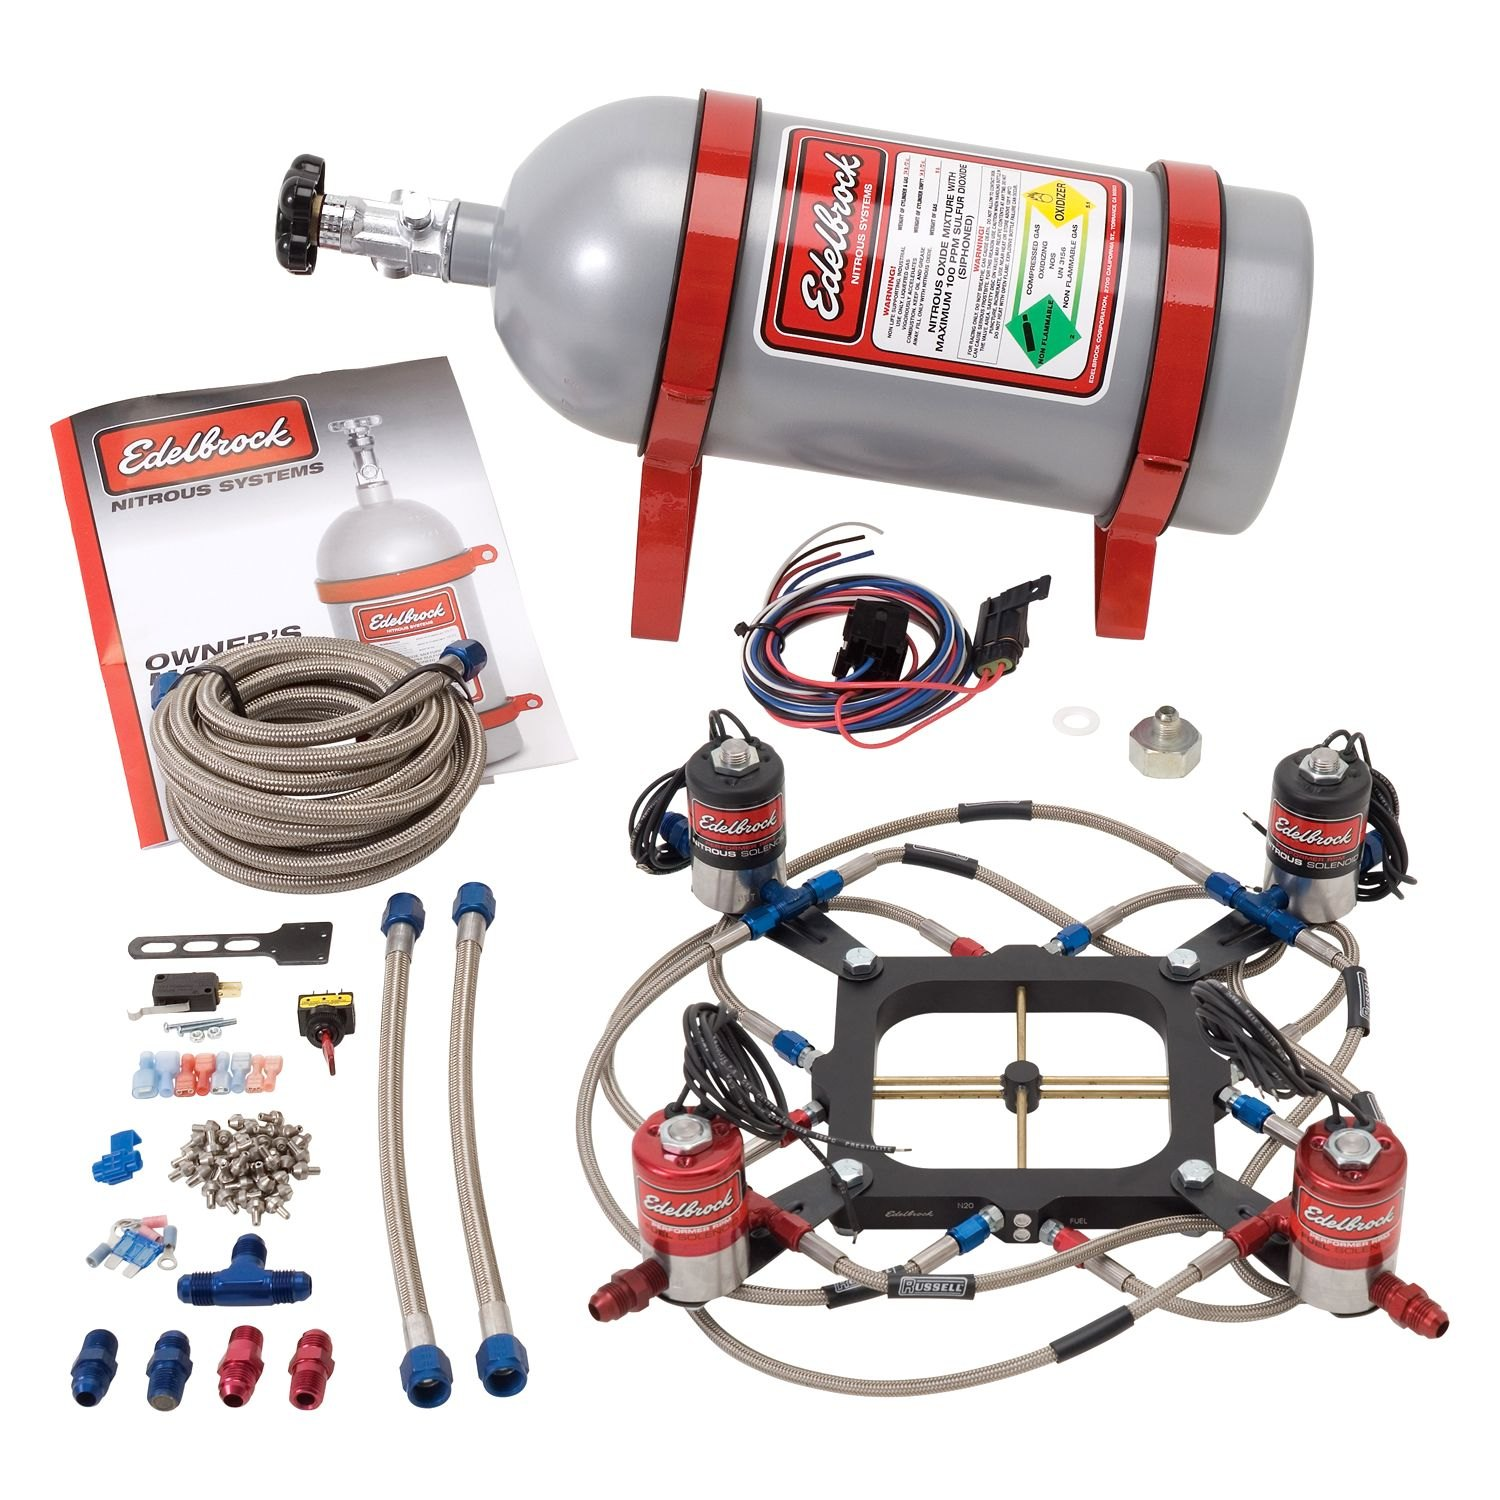 Edelbrock Ford Mustang 50l 1983 Performer Rpm Ii Carb Plate Efi With Nitrous Oxide Nos Wiring System Dual Stage For 4500 Series Carburetor